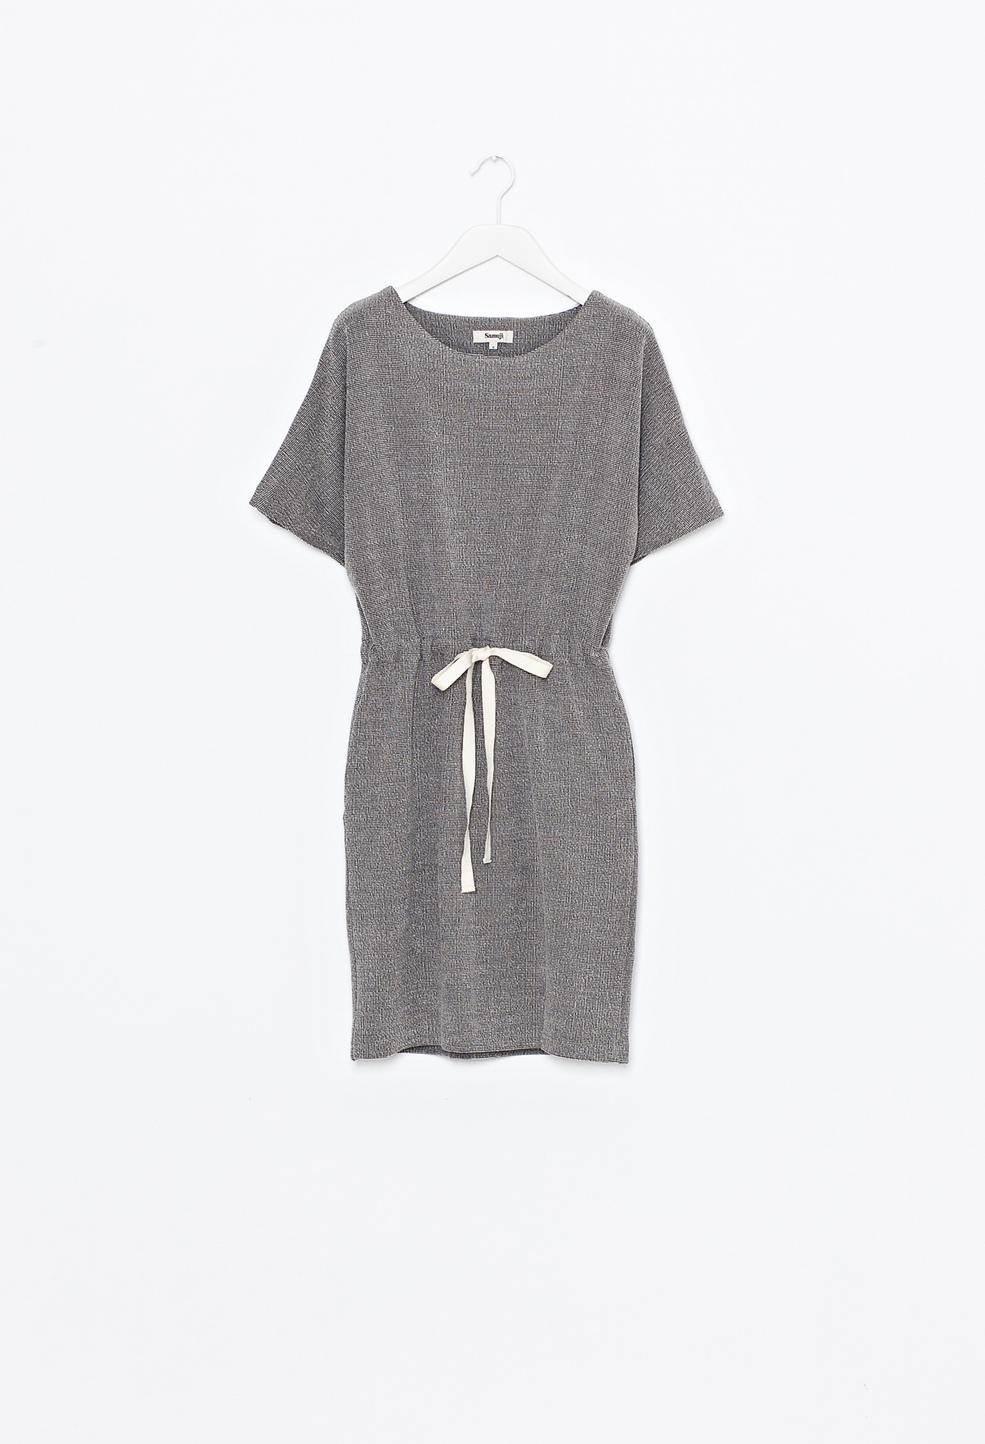 Cade Dress Gray/White